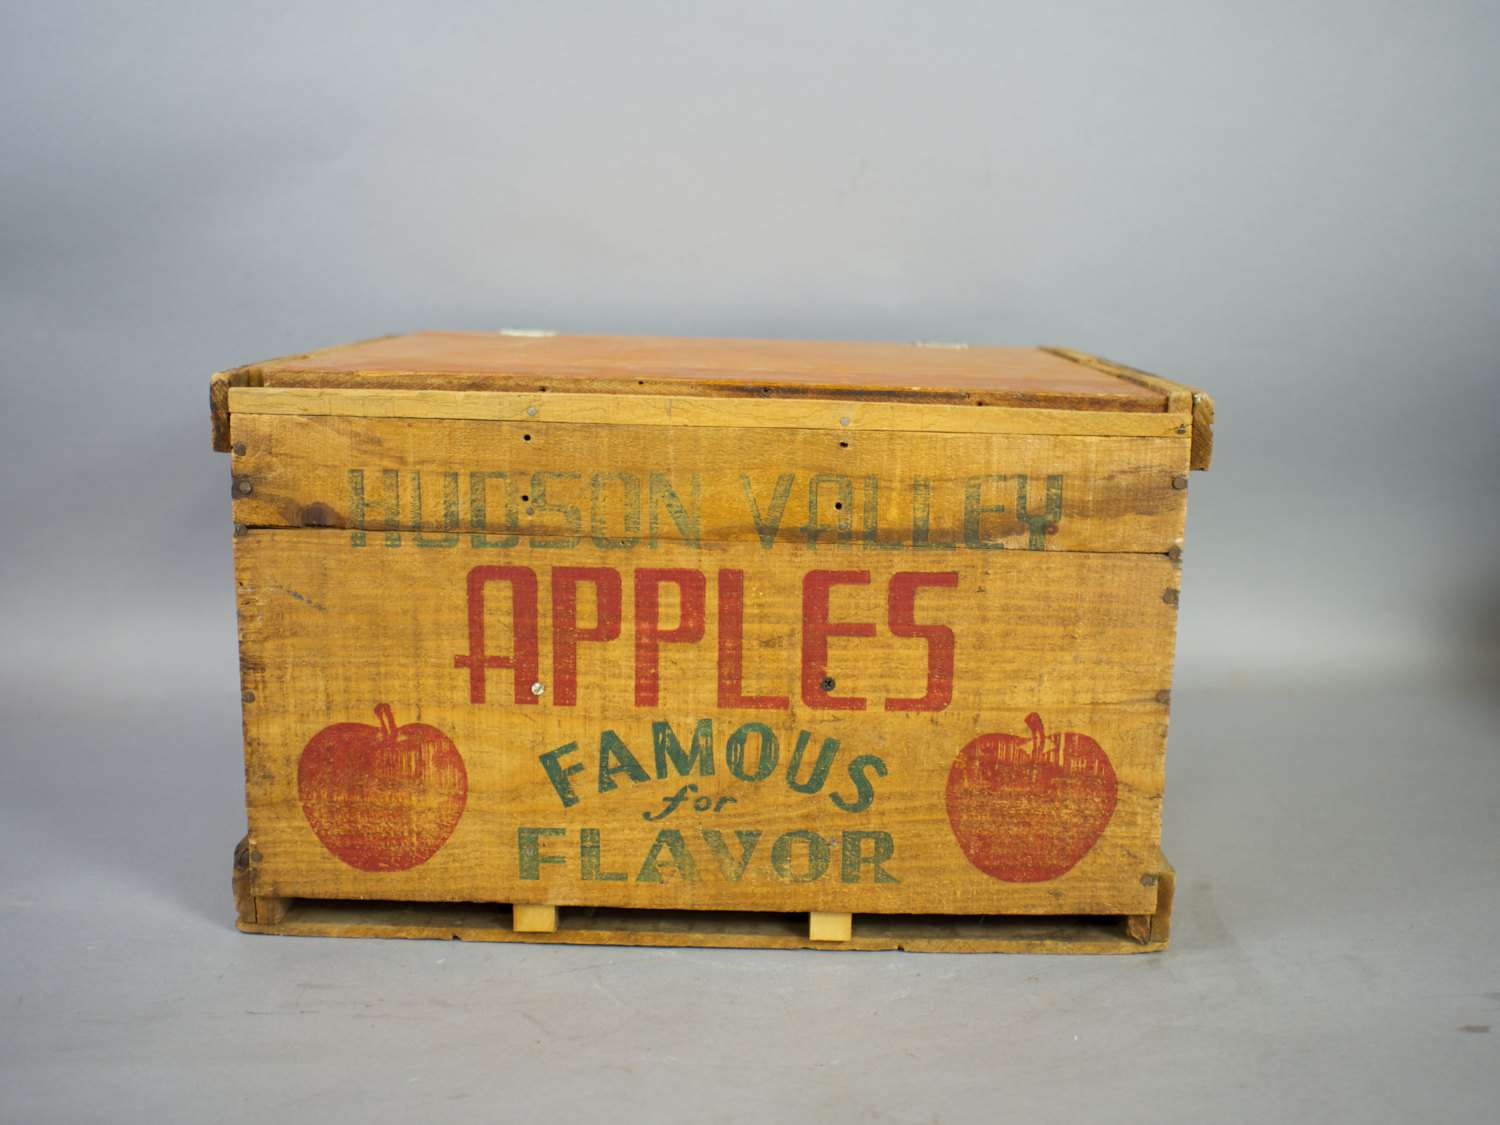 Vintage Apple Crate Wood Sevenbc Etsy